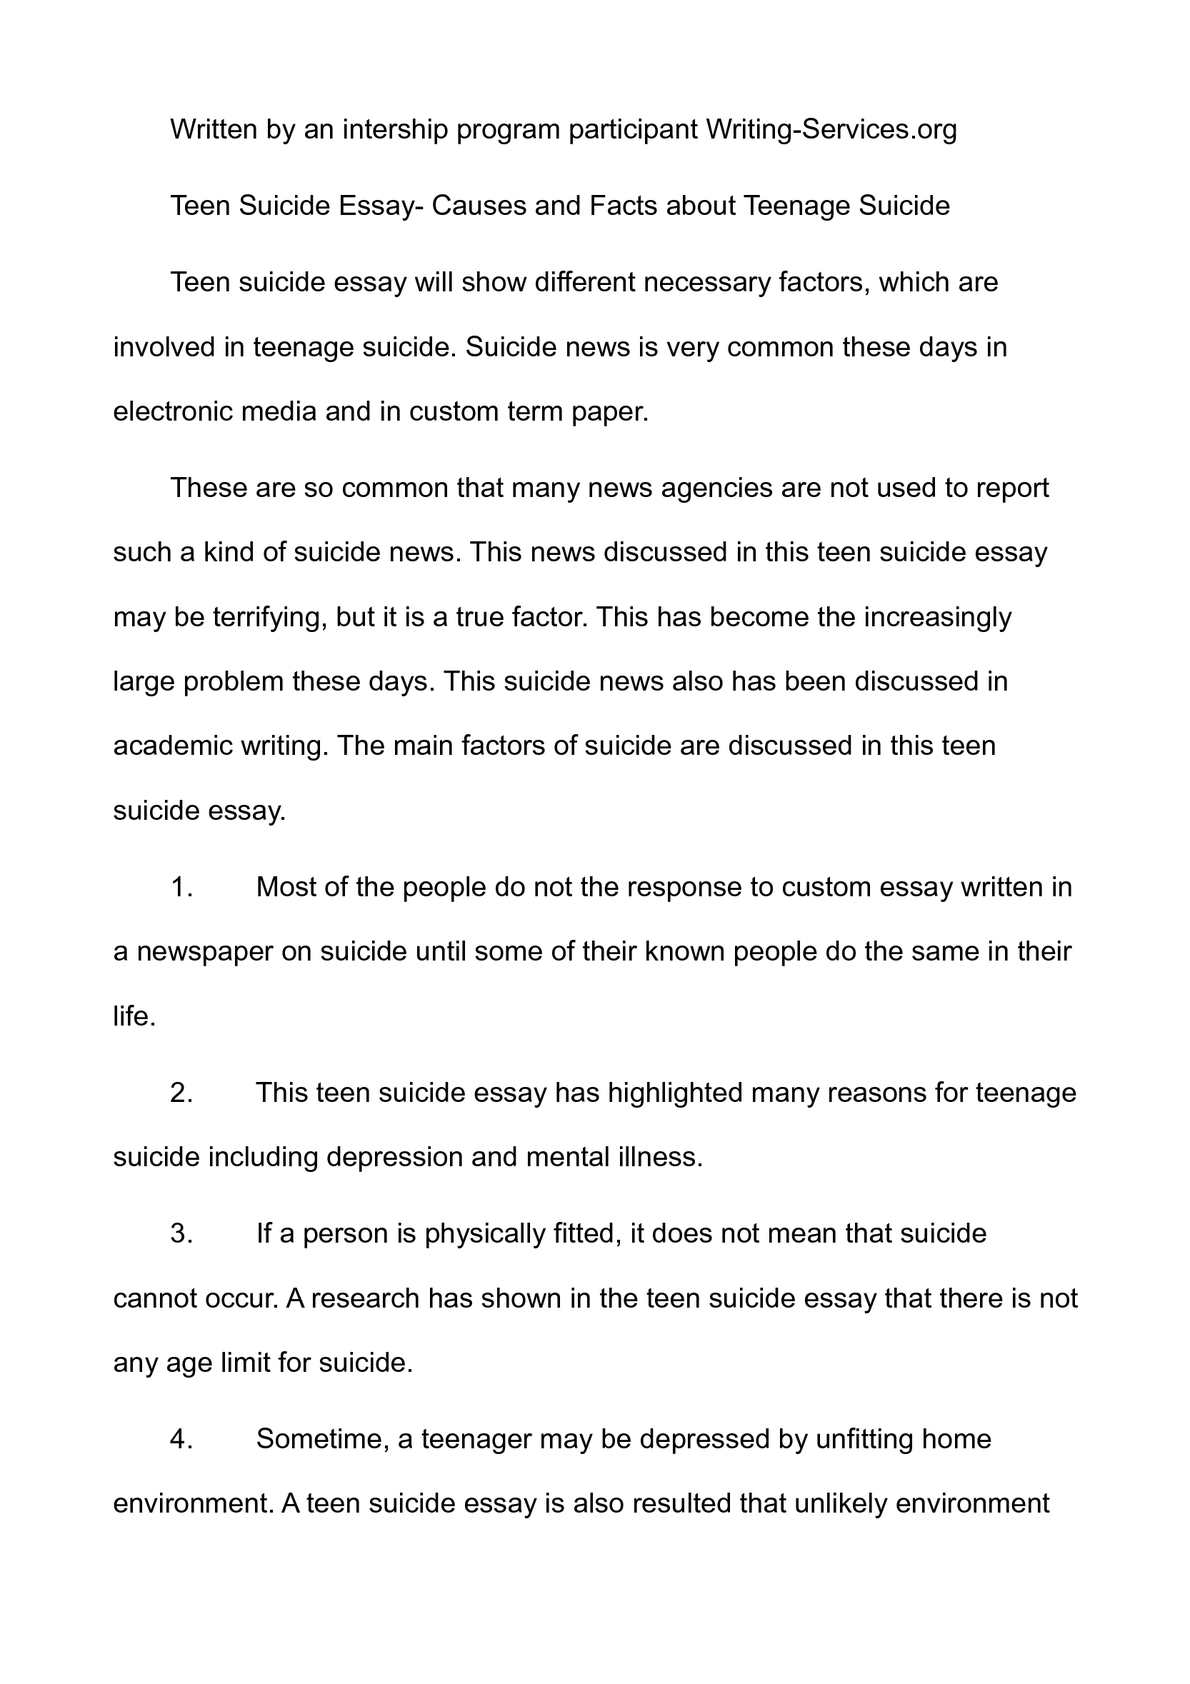 teenage suicide essay calamatilde131acirccopyo teen suicide essay causes and facts about teenage suicide